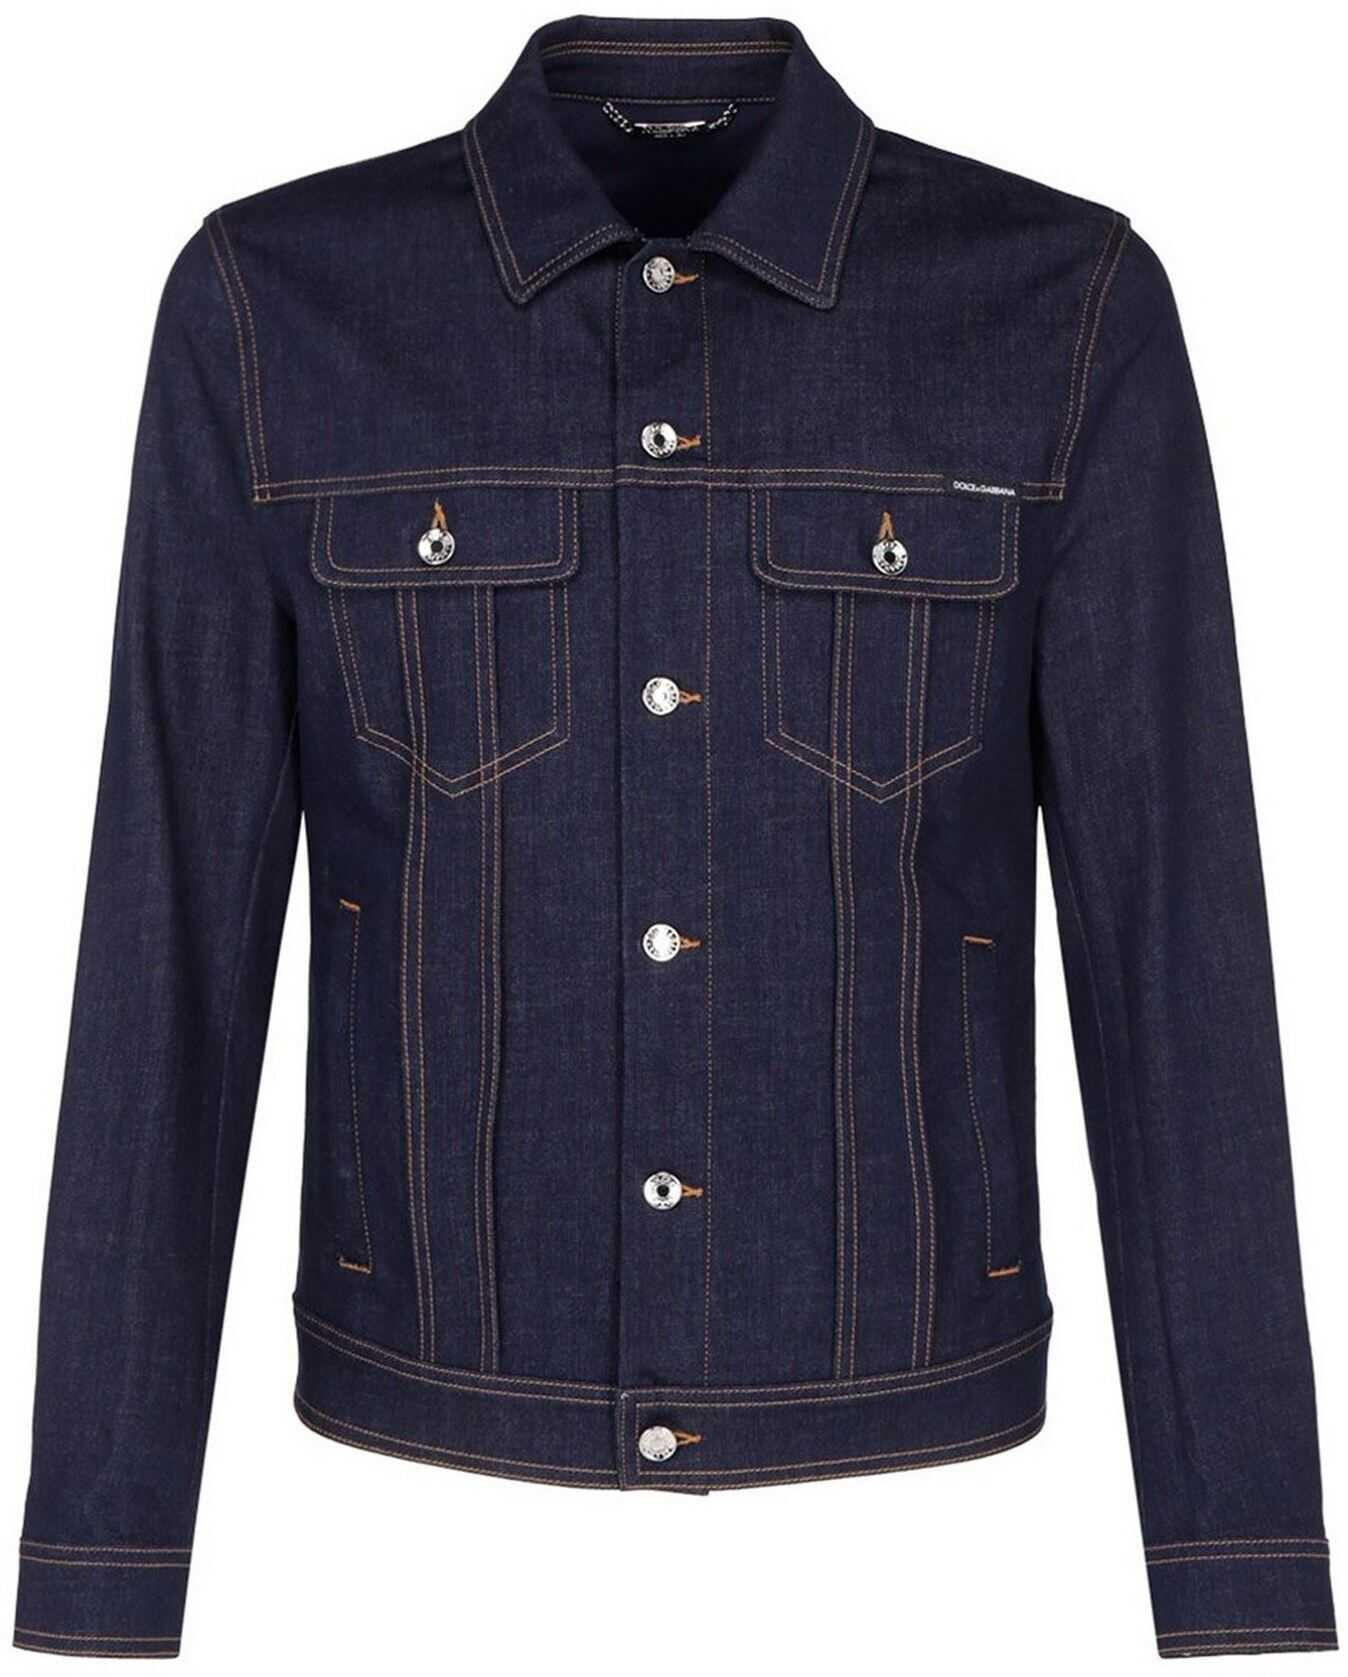 Dolce & Gabbana Denim Jacket In Blue Blue imagine